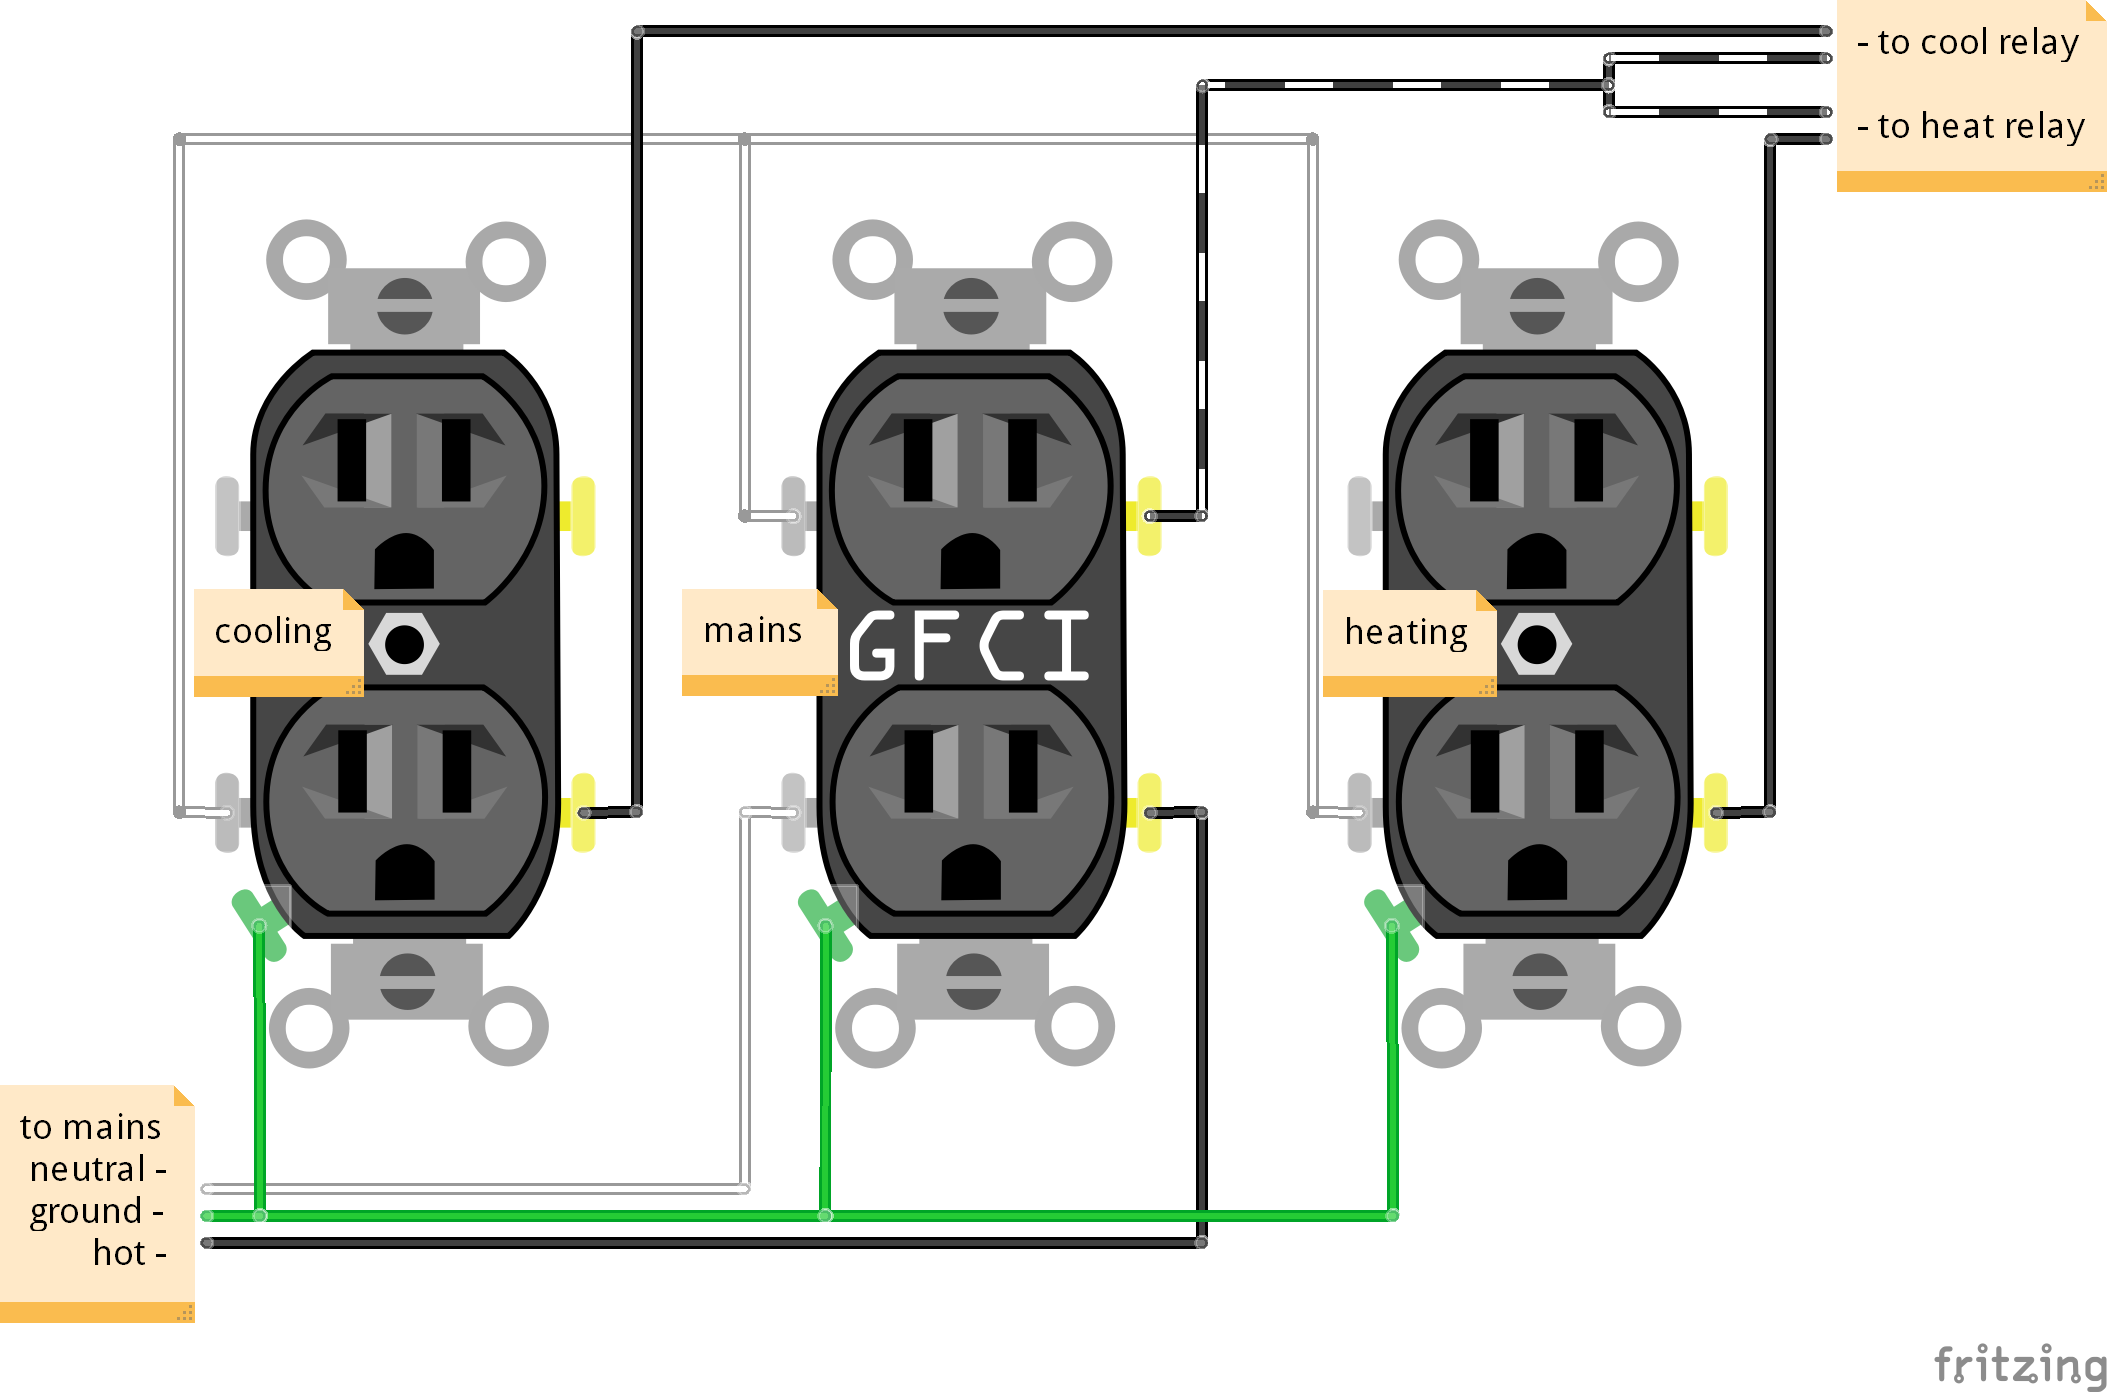 Fritzing simple power outlet circuitry - - Forums